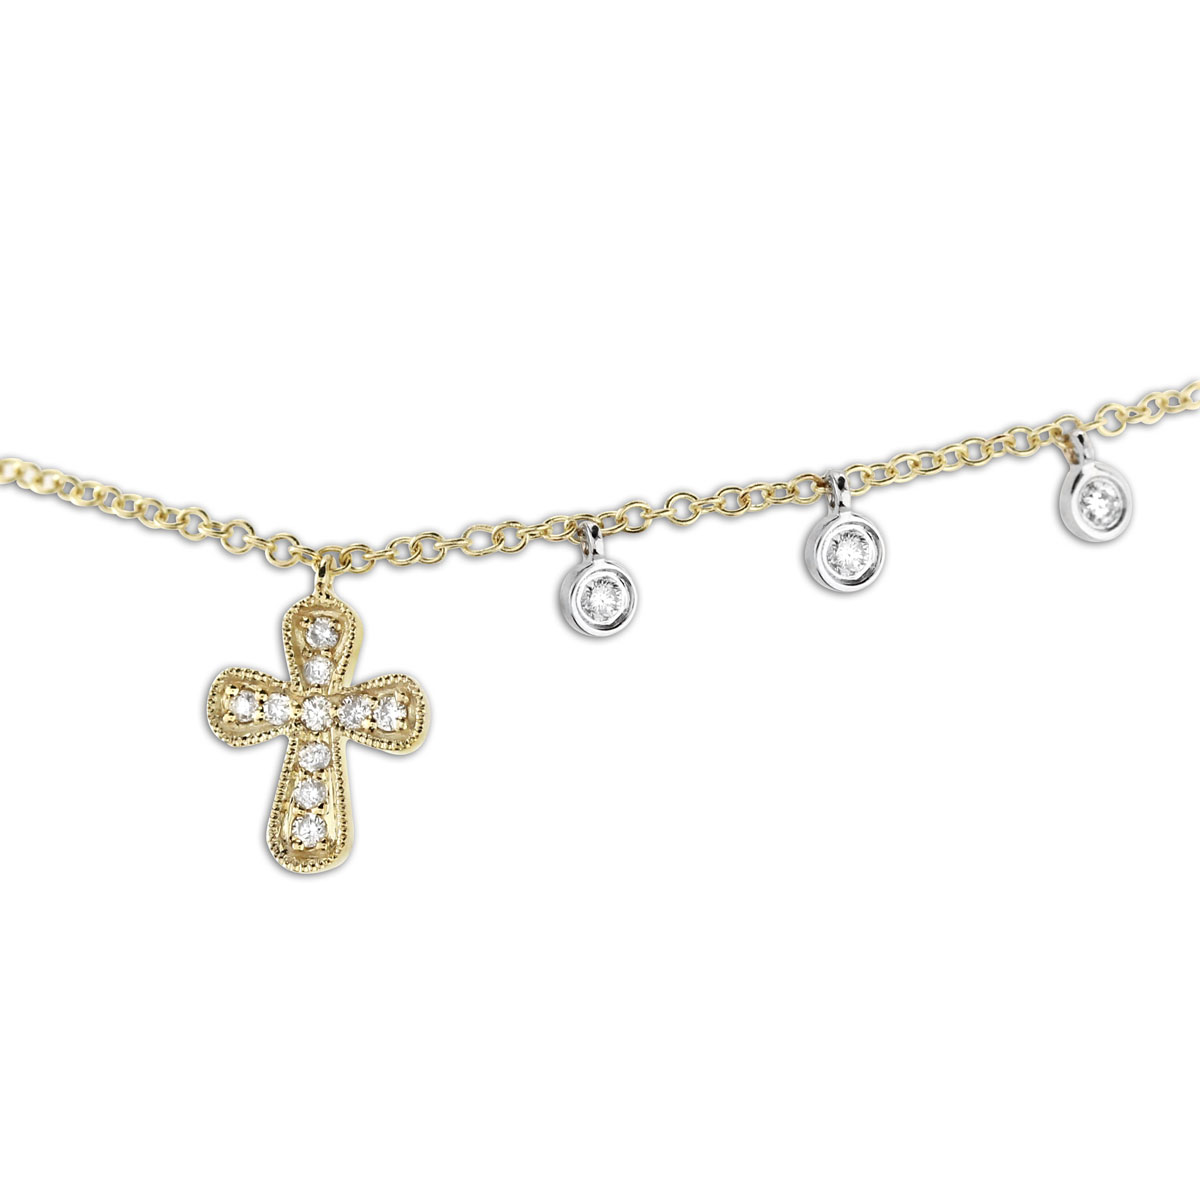 341762-Cross Necklace